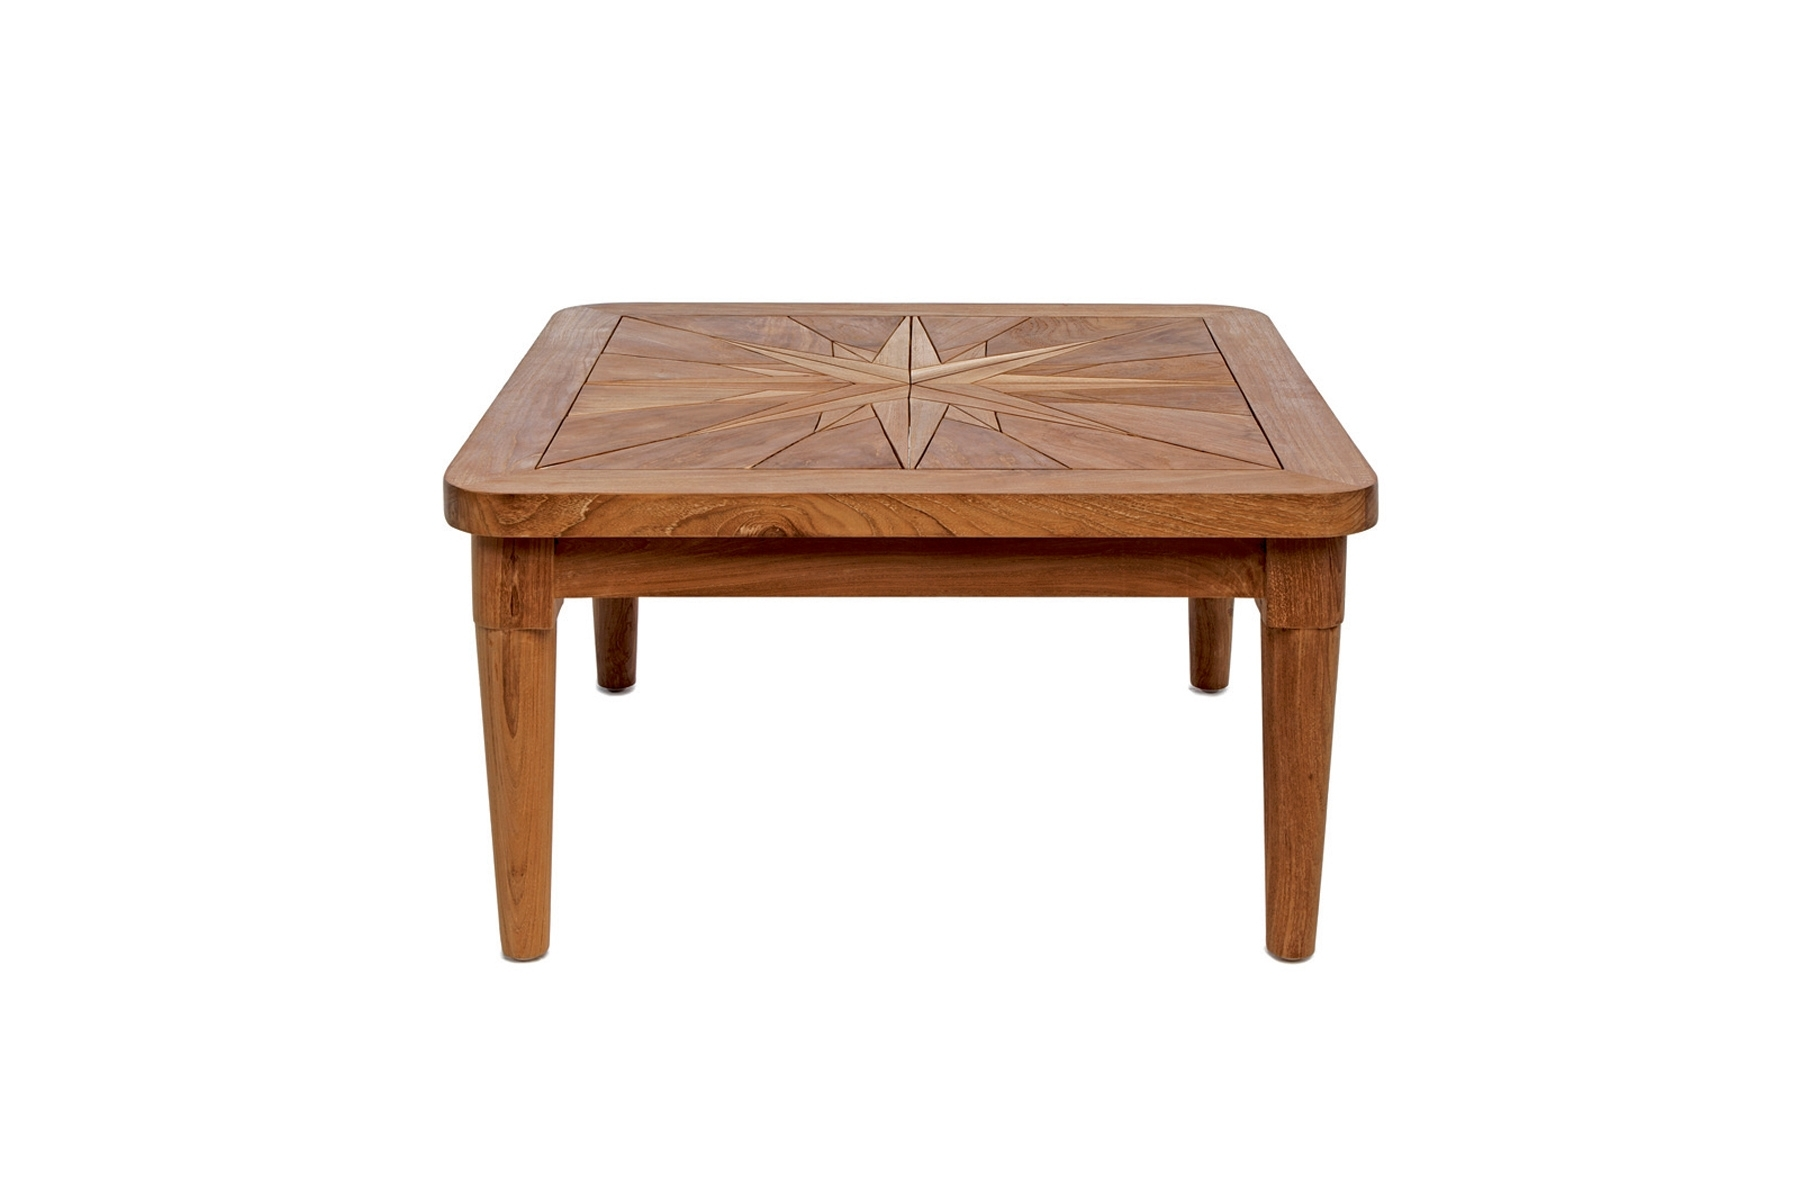 Laurent Rectangle Dining Tables Intended For Most Up To Date Square Side Table Mistral – Saint Laurent – Il Giardino Di Legno (View 11 of 25)